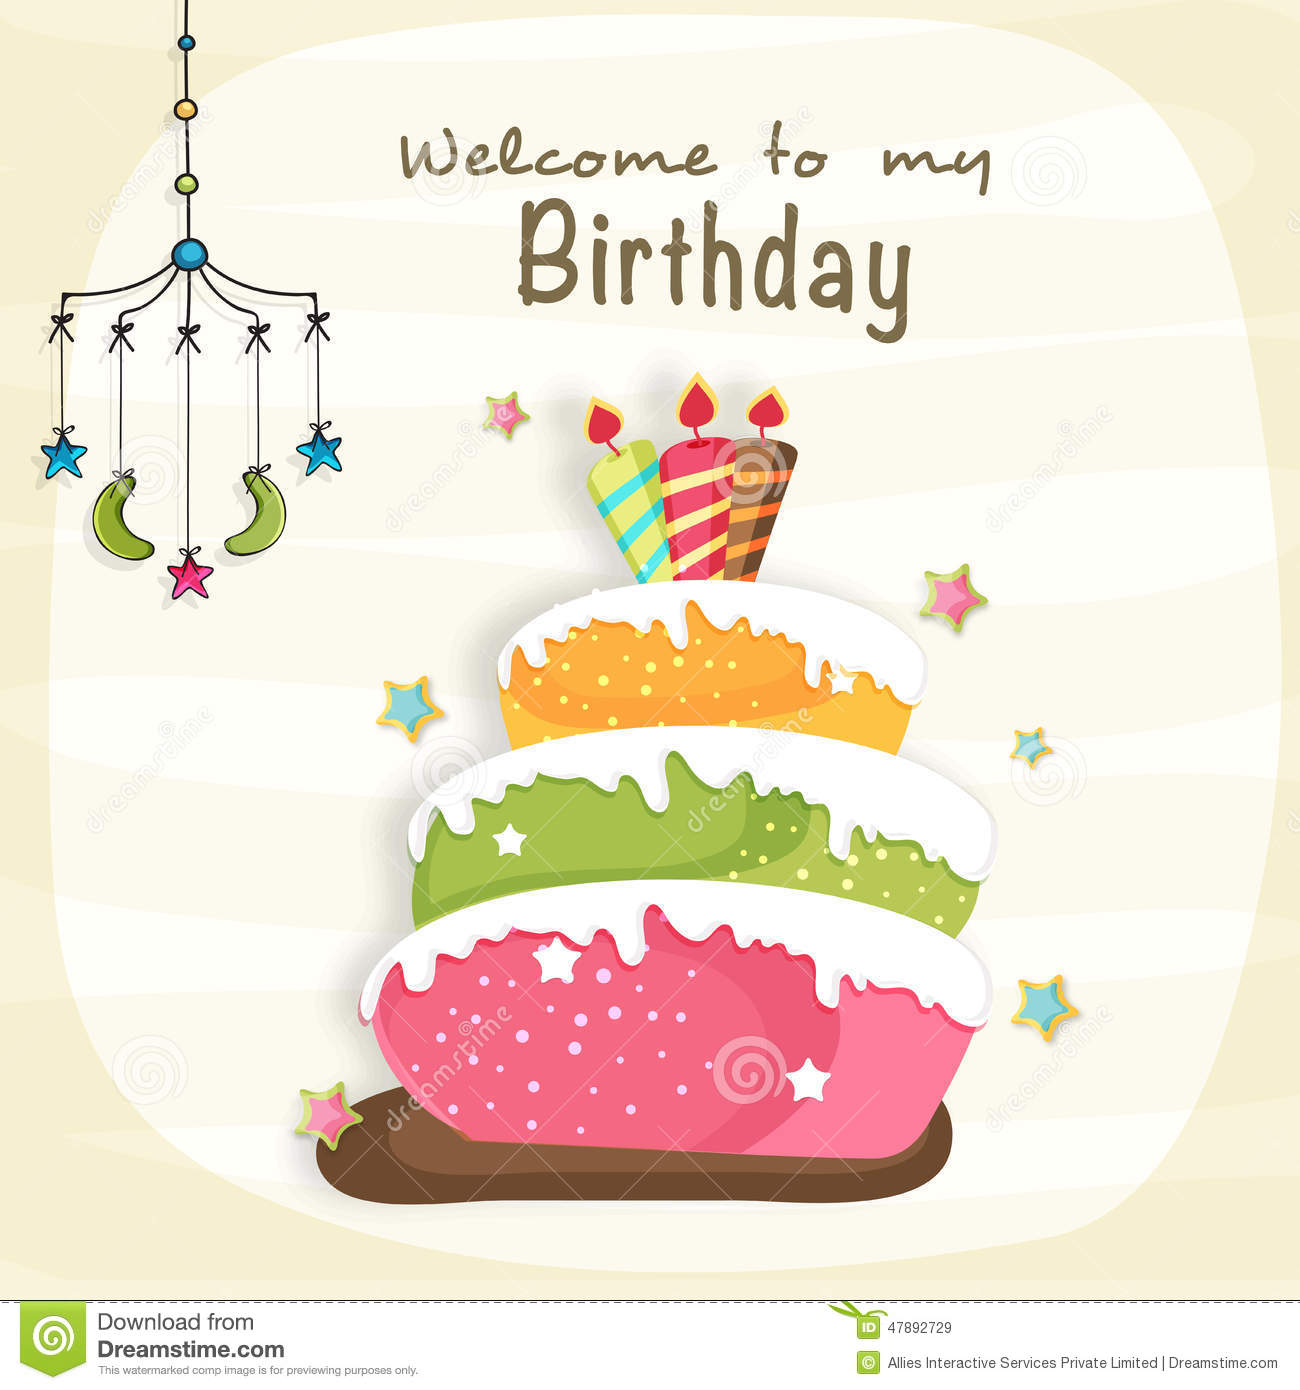 Birthday Celebration Invitation Card Design Stock Illustration